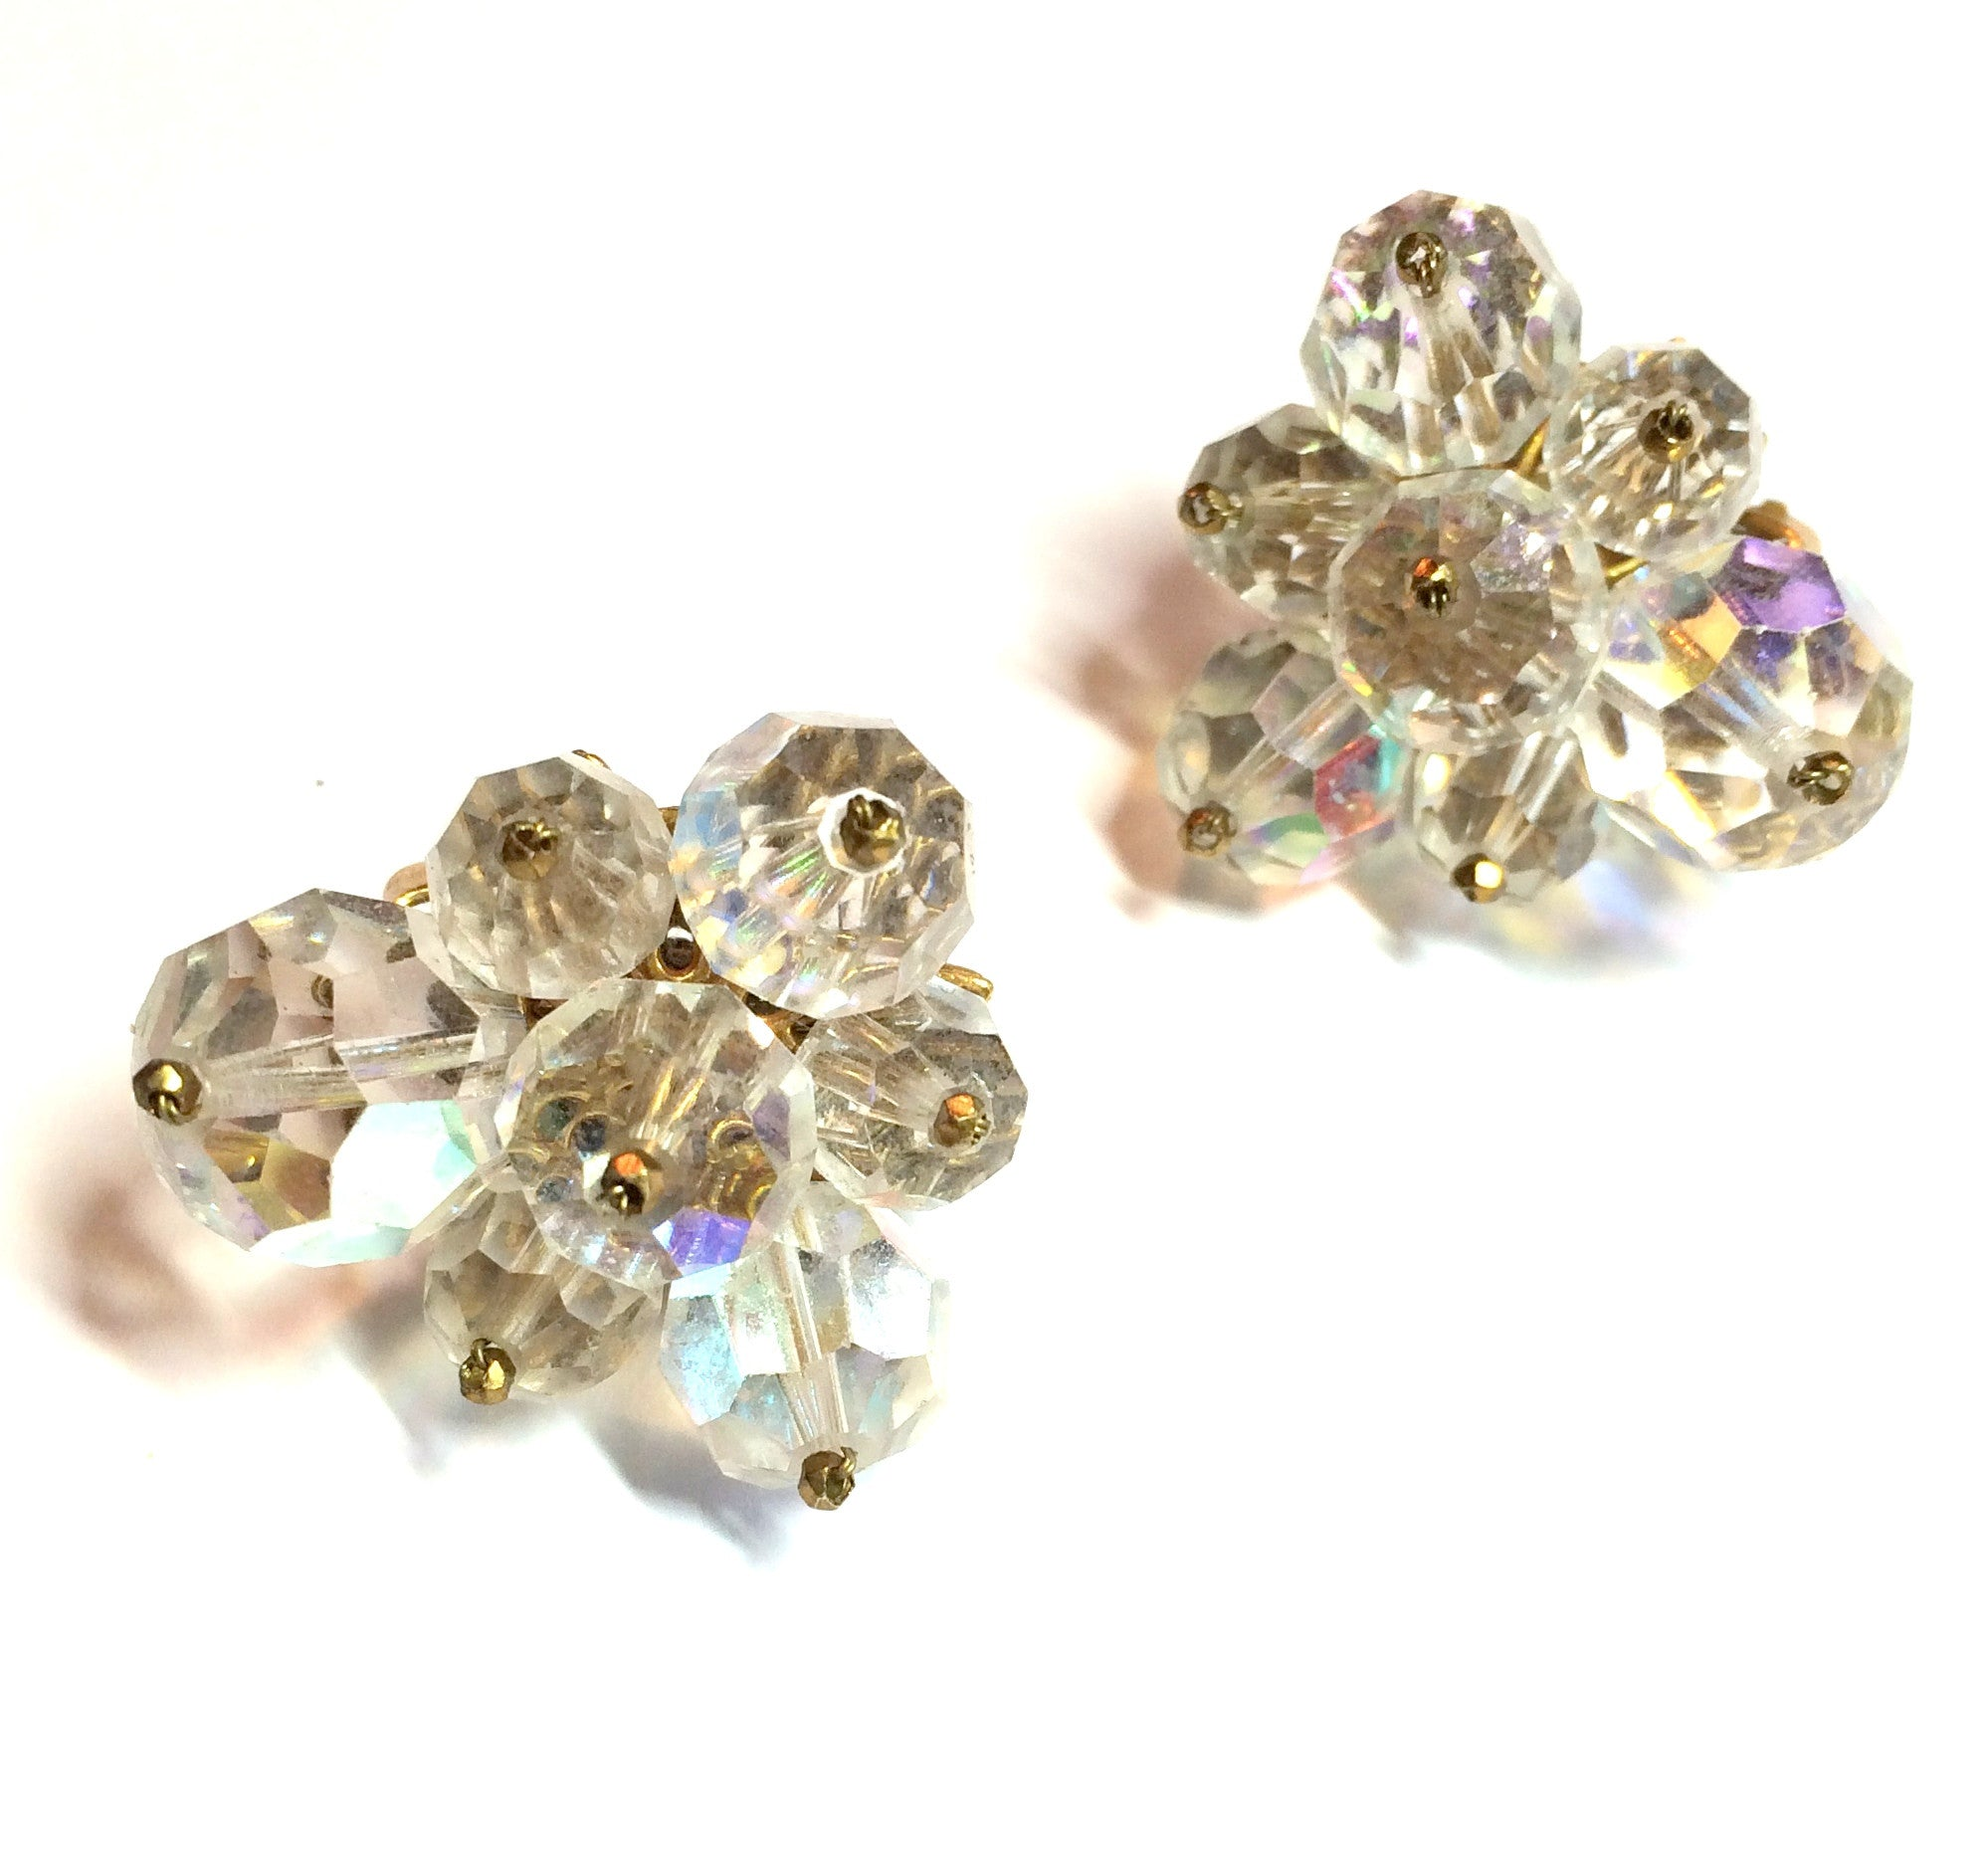 Statement Sized Austrian Crystal Bead Cluster Earrings circa 1950s